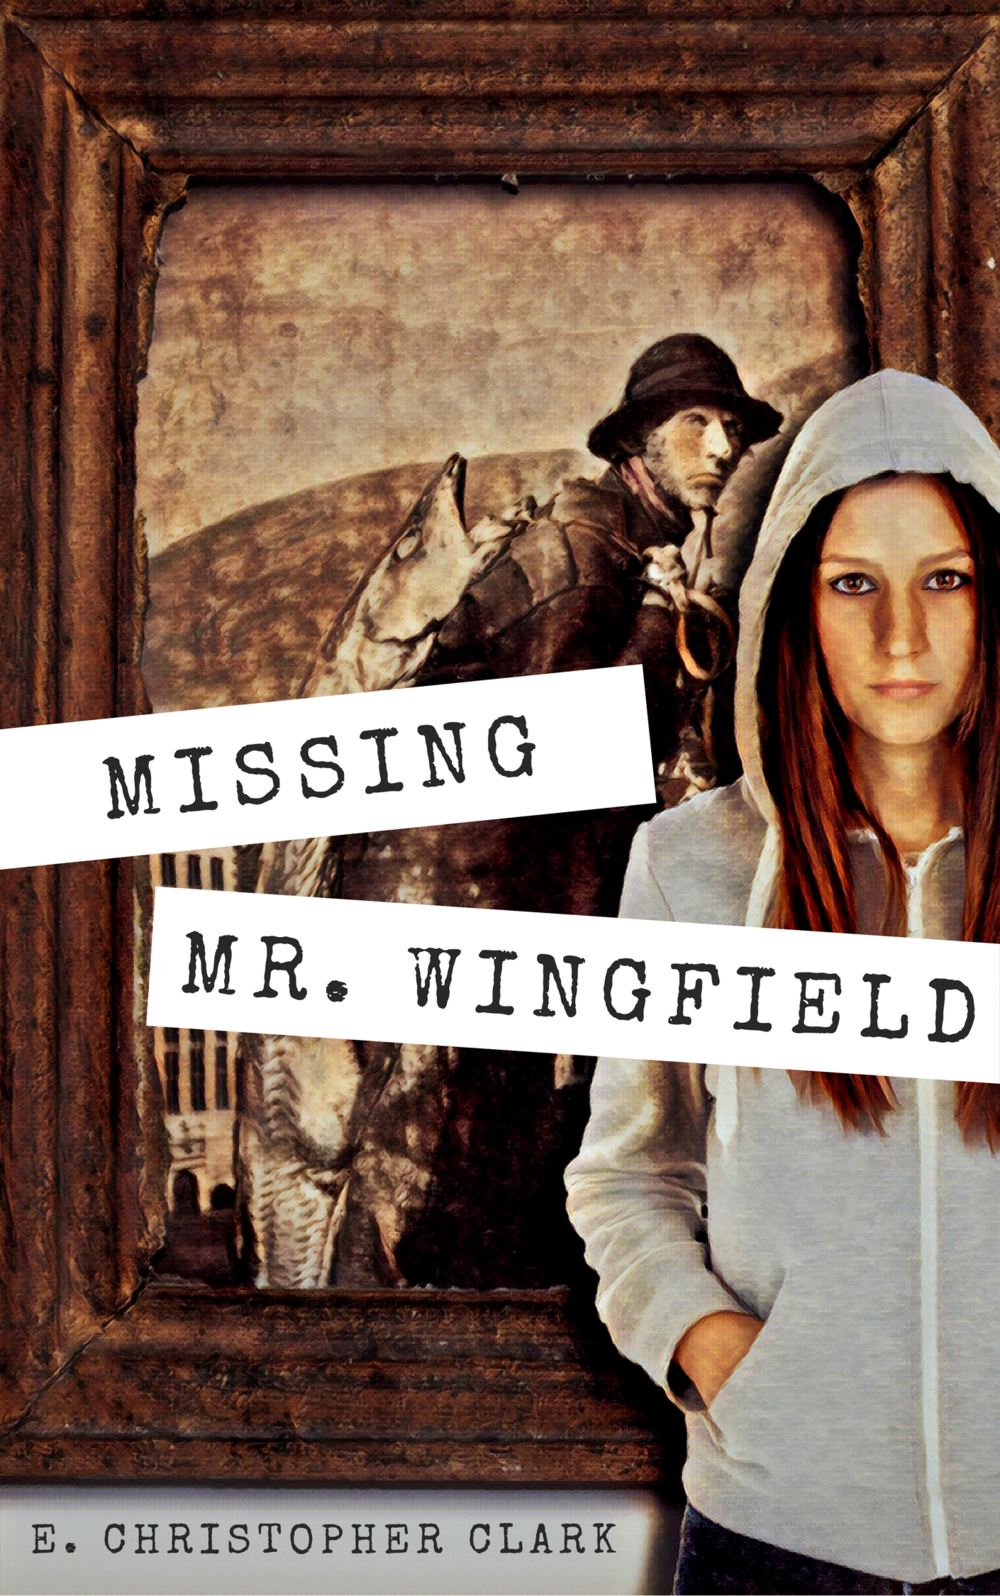 Book cover of the novel MISSING MR. WINGFIELD by E. Christopher Clark